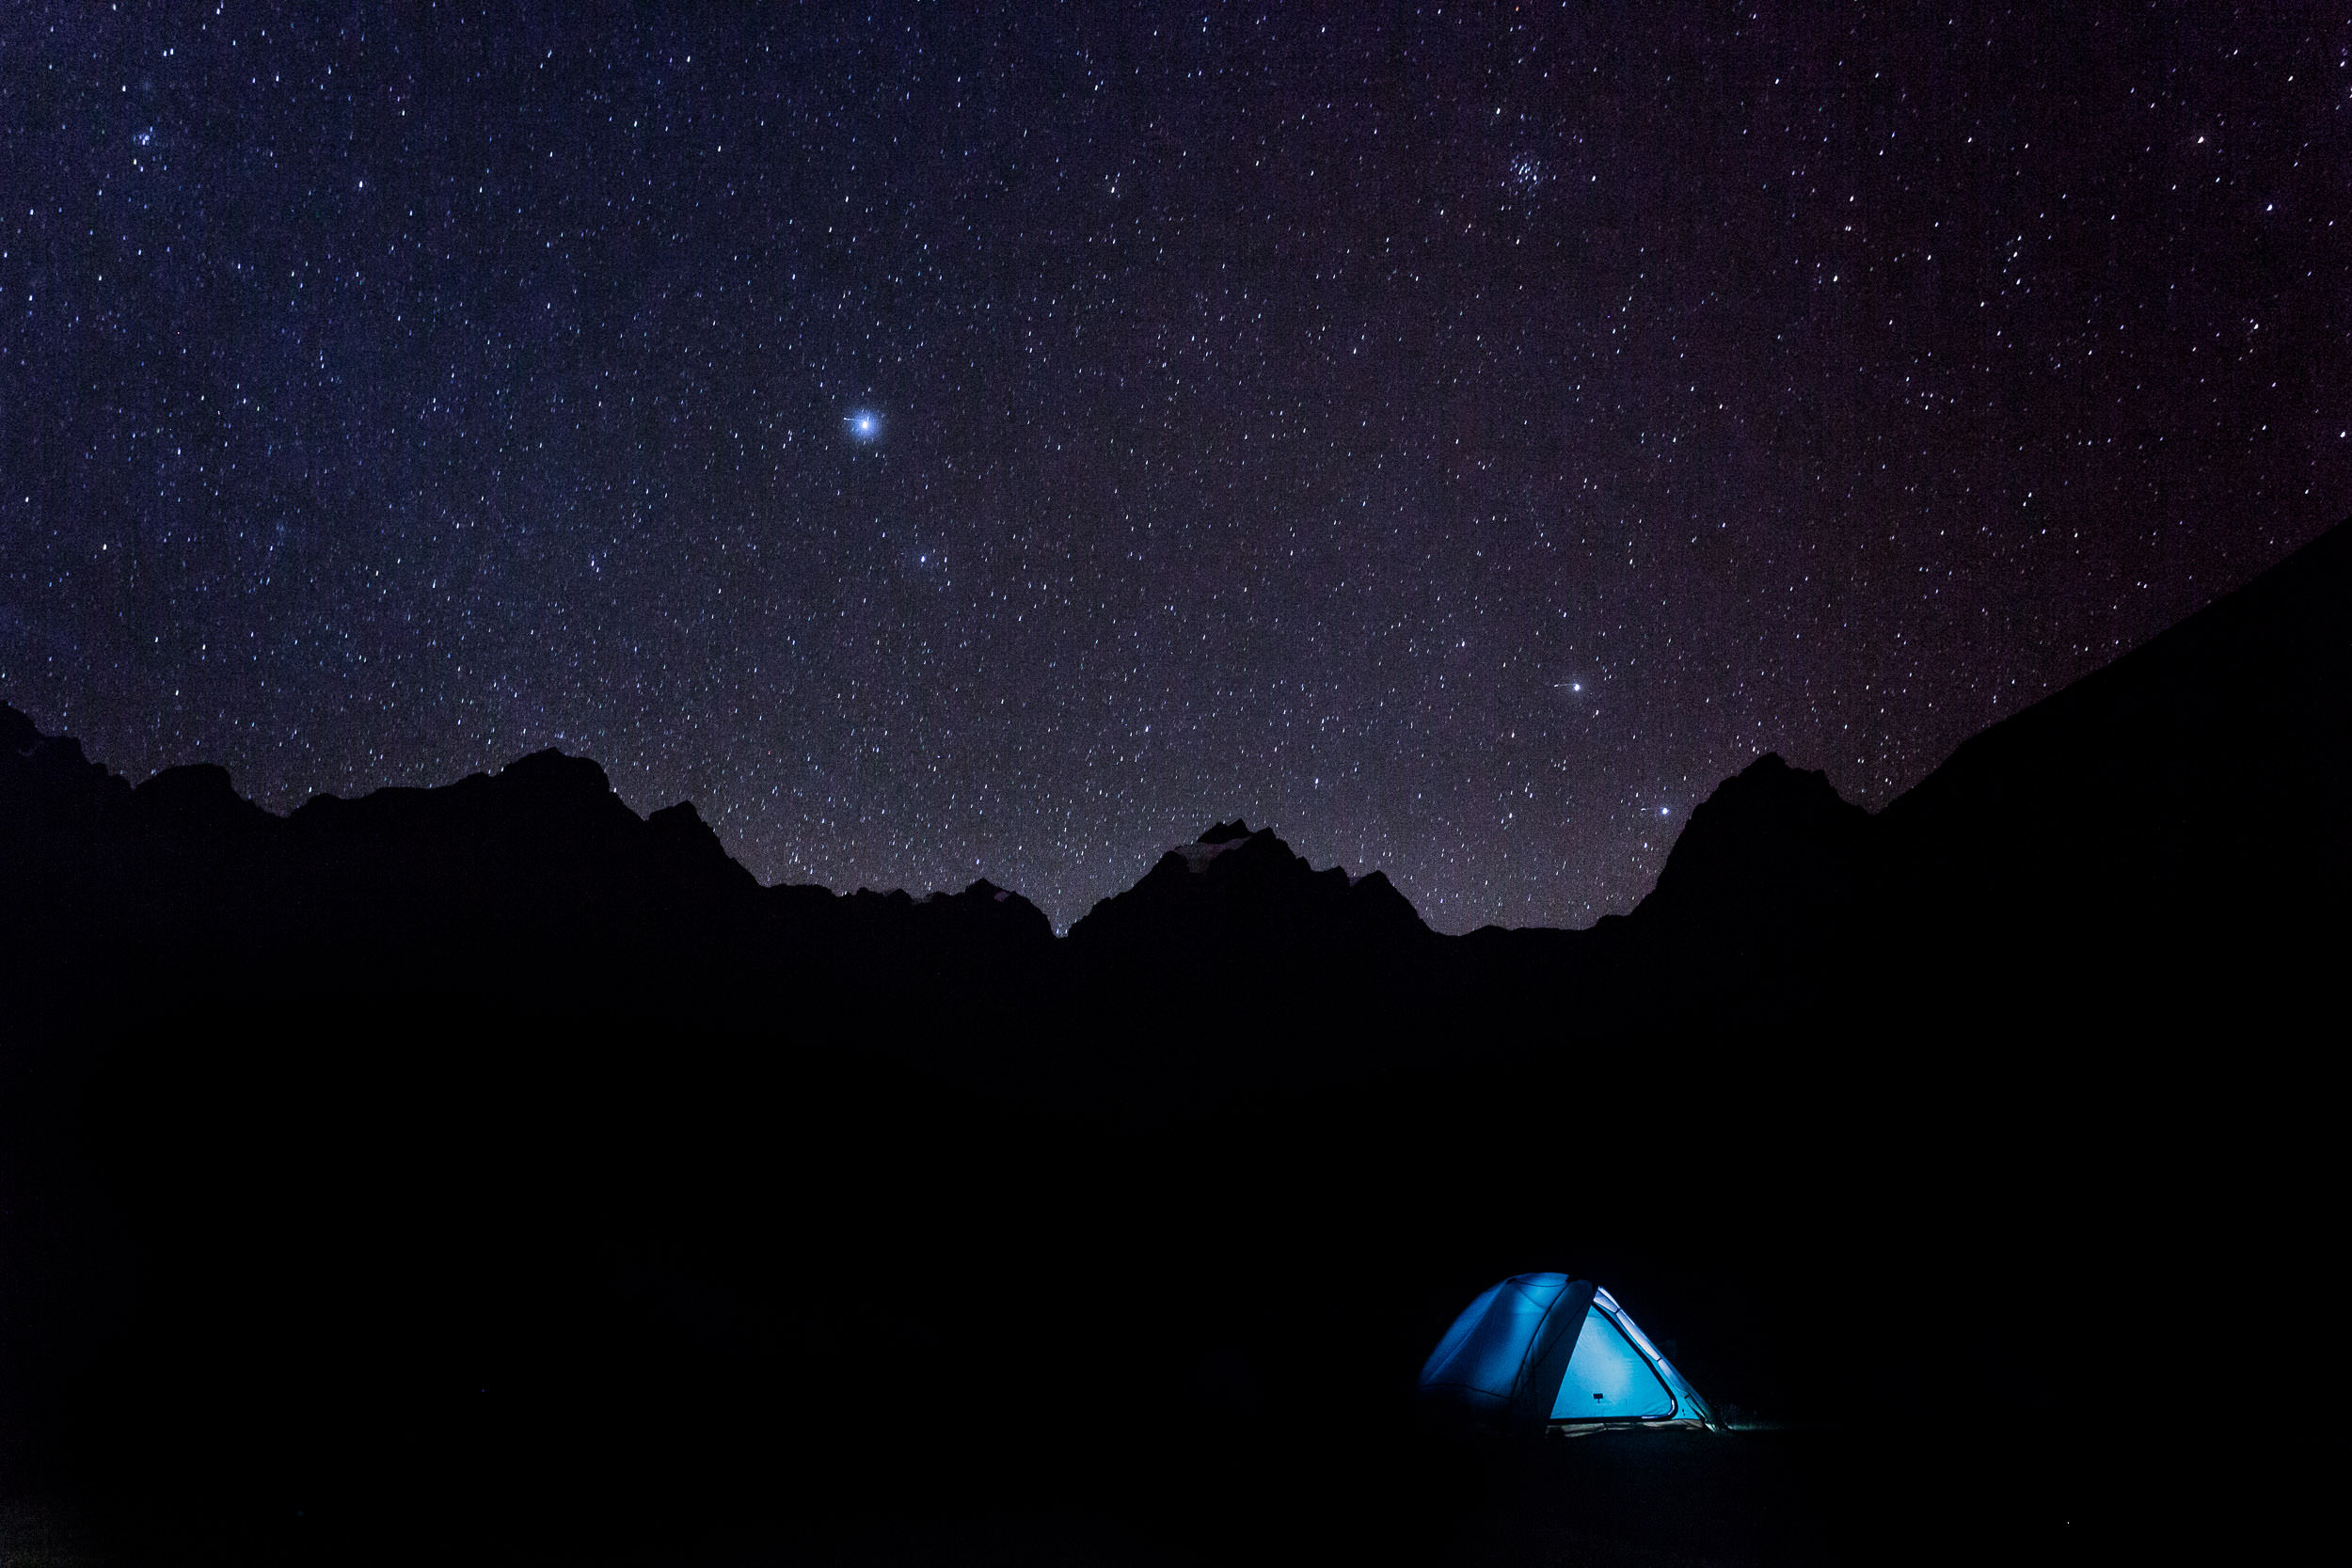 Camping under the Stars en our Trek to Machu Picchu